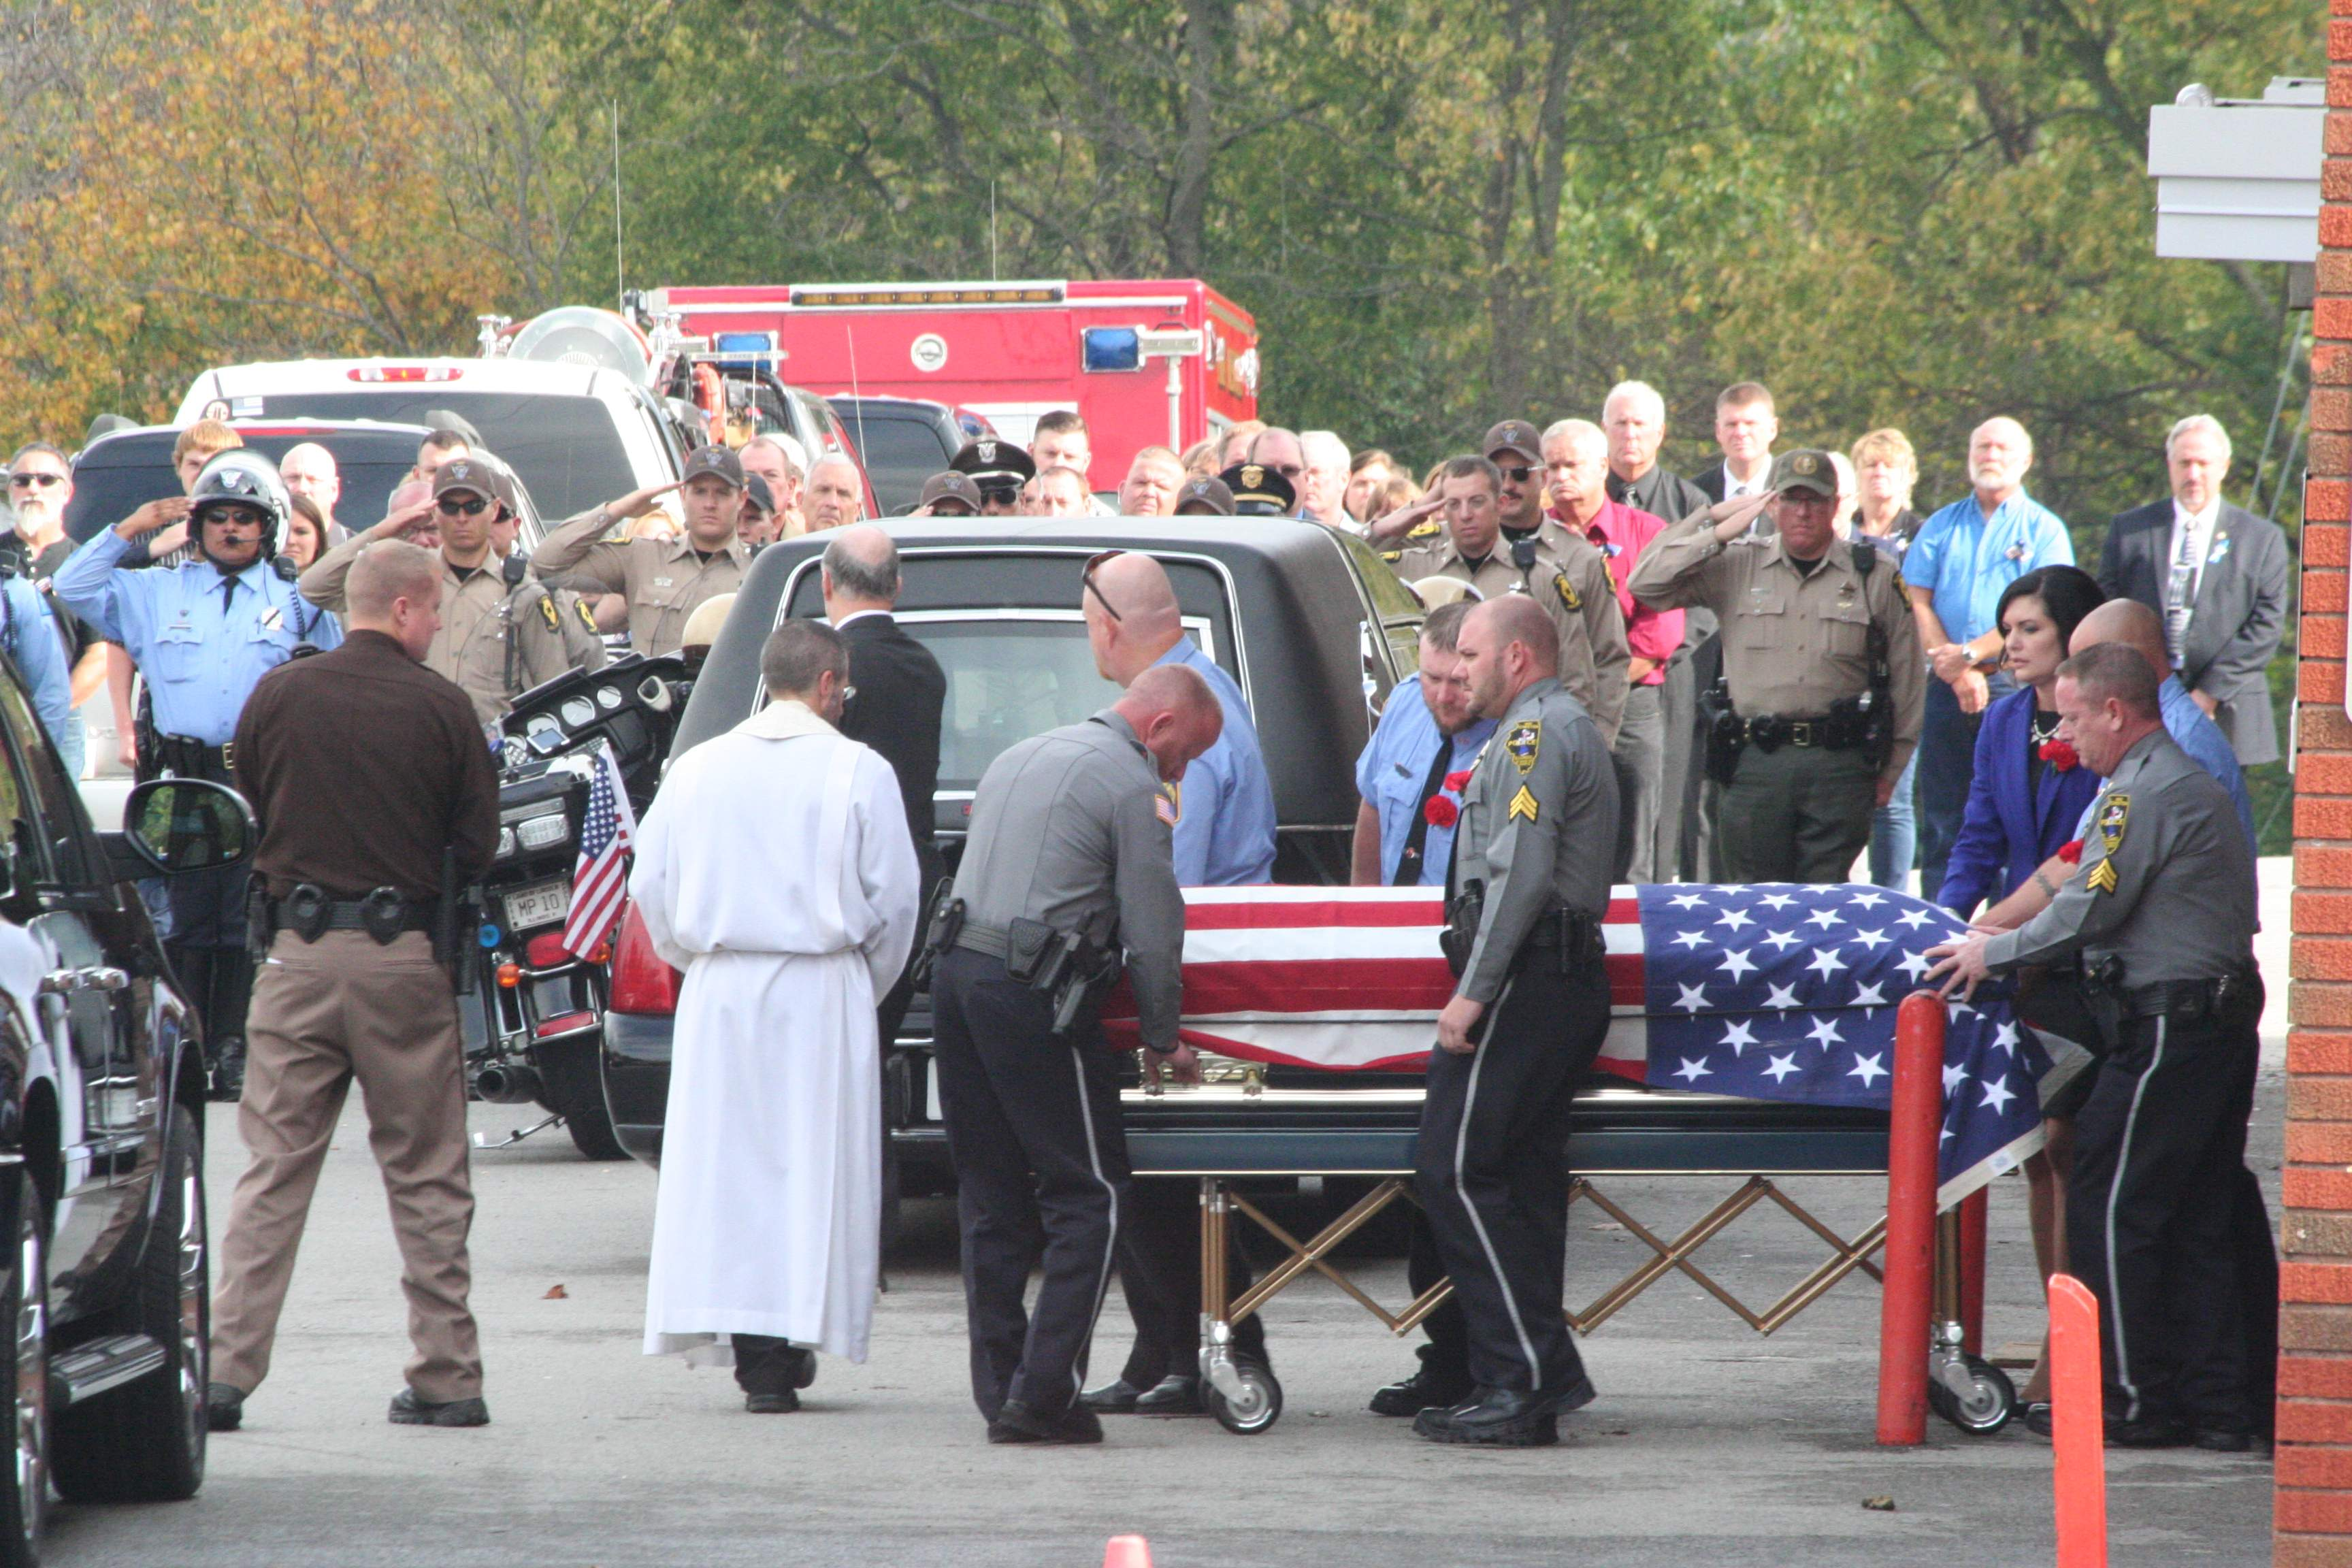 Chester police officers and firefighters escort the casket of fallen Chester Police officer and volunteer firefighter James Brockmeyer to a waiting hearse after Brockmeyer's funeral service at Chester High School in November.